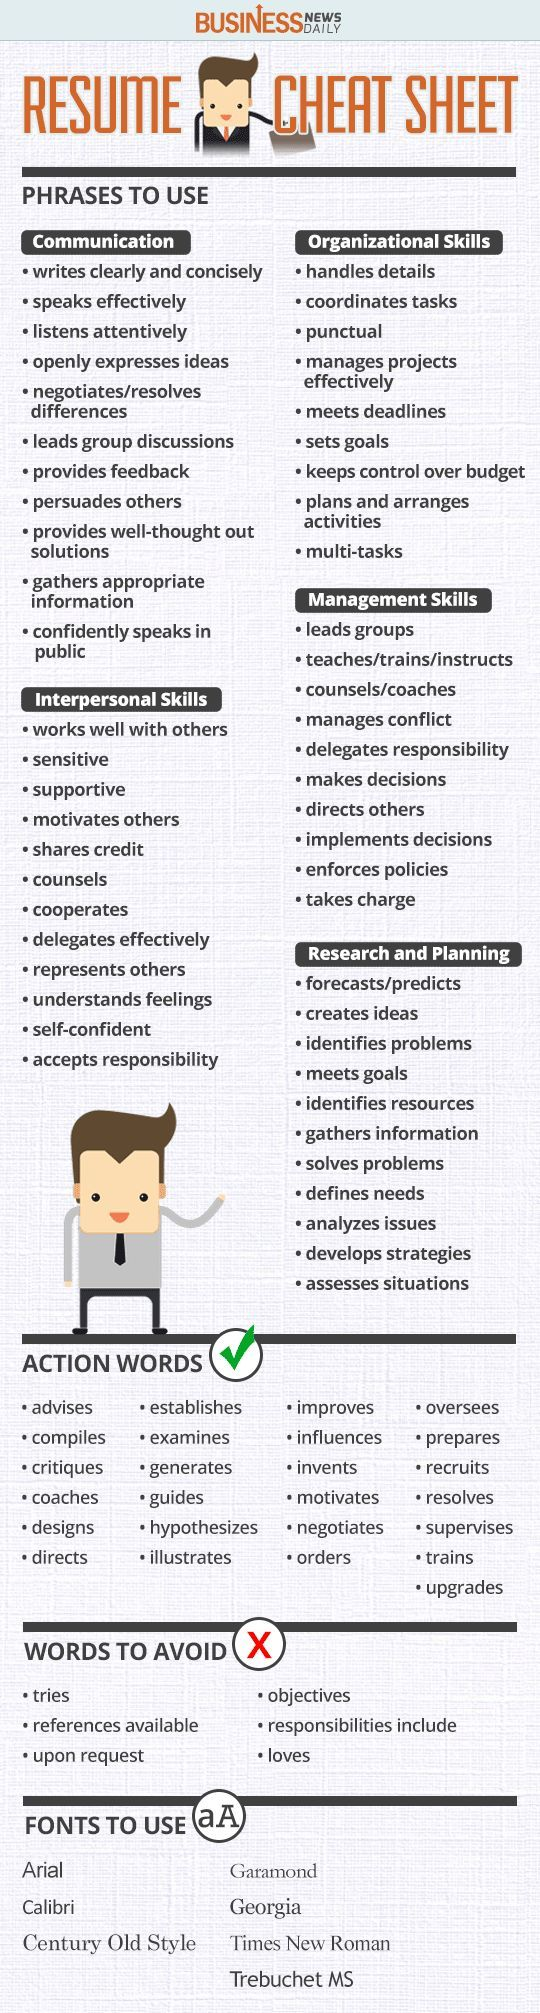 17 best ideas about resume helper resume resume crystaldiercks the only resume cheat sheet you will ever need is putting your resume together making you question if you should apply for a job